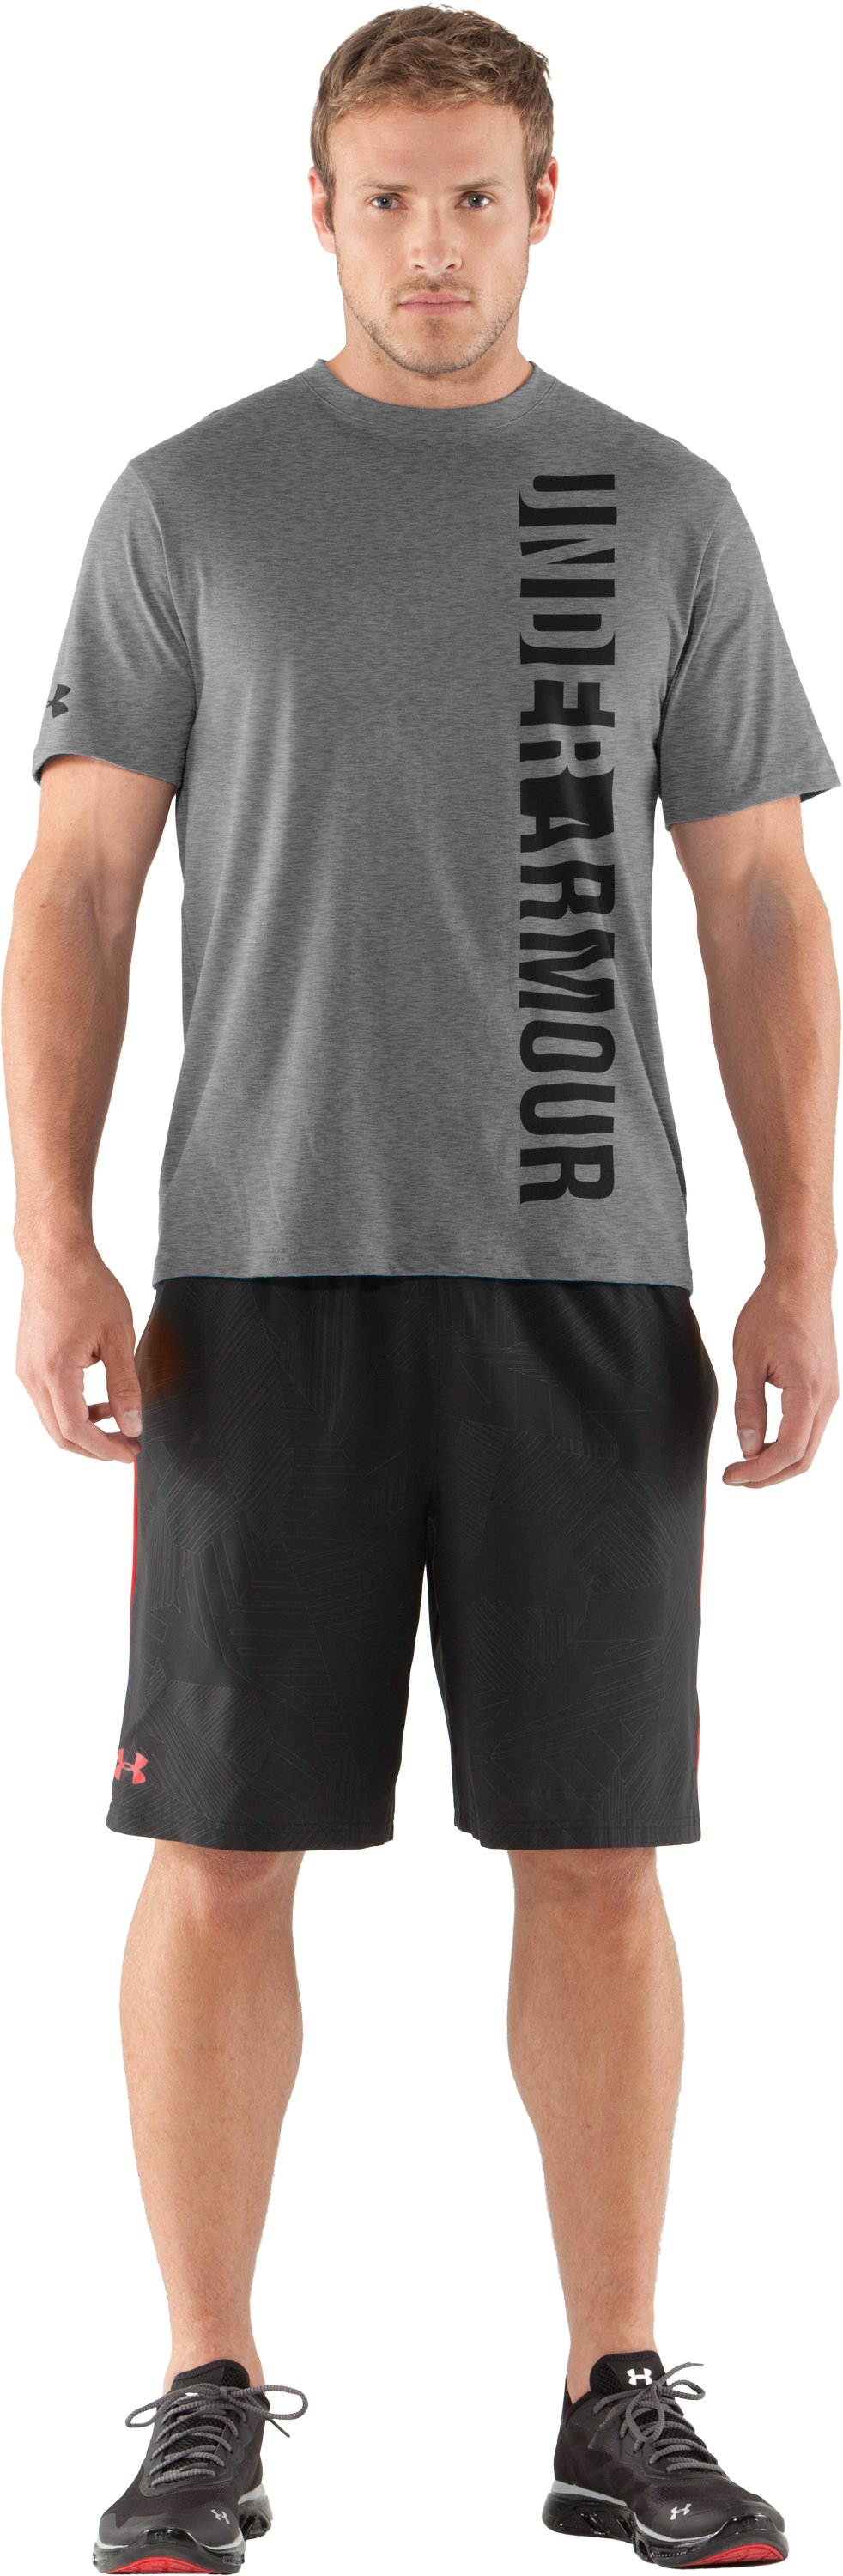 Men's UA Vertmark T-Shirt, True Gray Heather, zoomed image